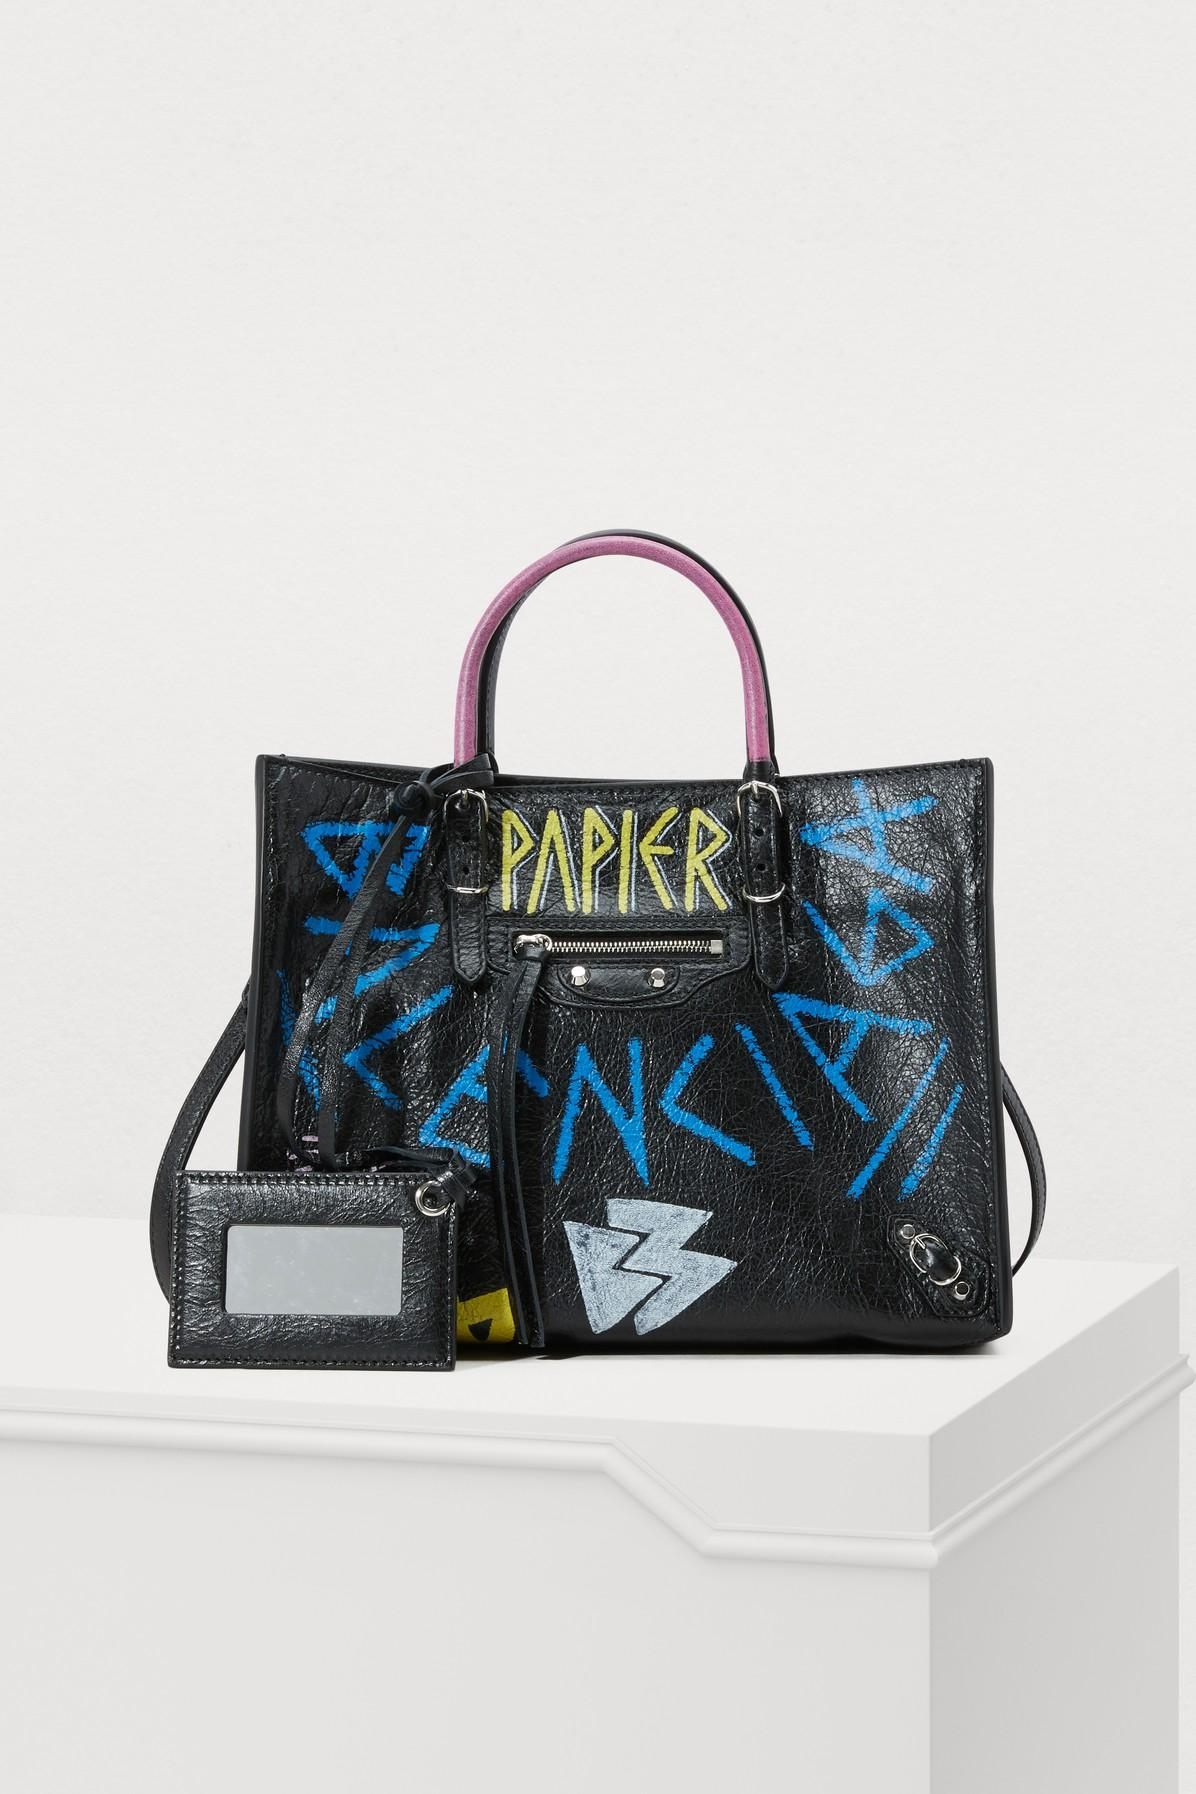 97c1d2e3ee6e Balenciaga Papier A6 Zip Around Graffiti Tote Bag In Black Multi ...